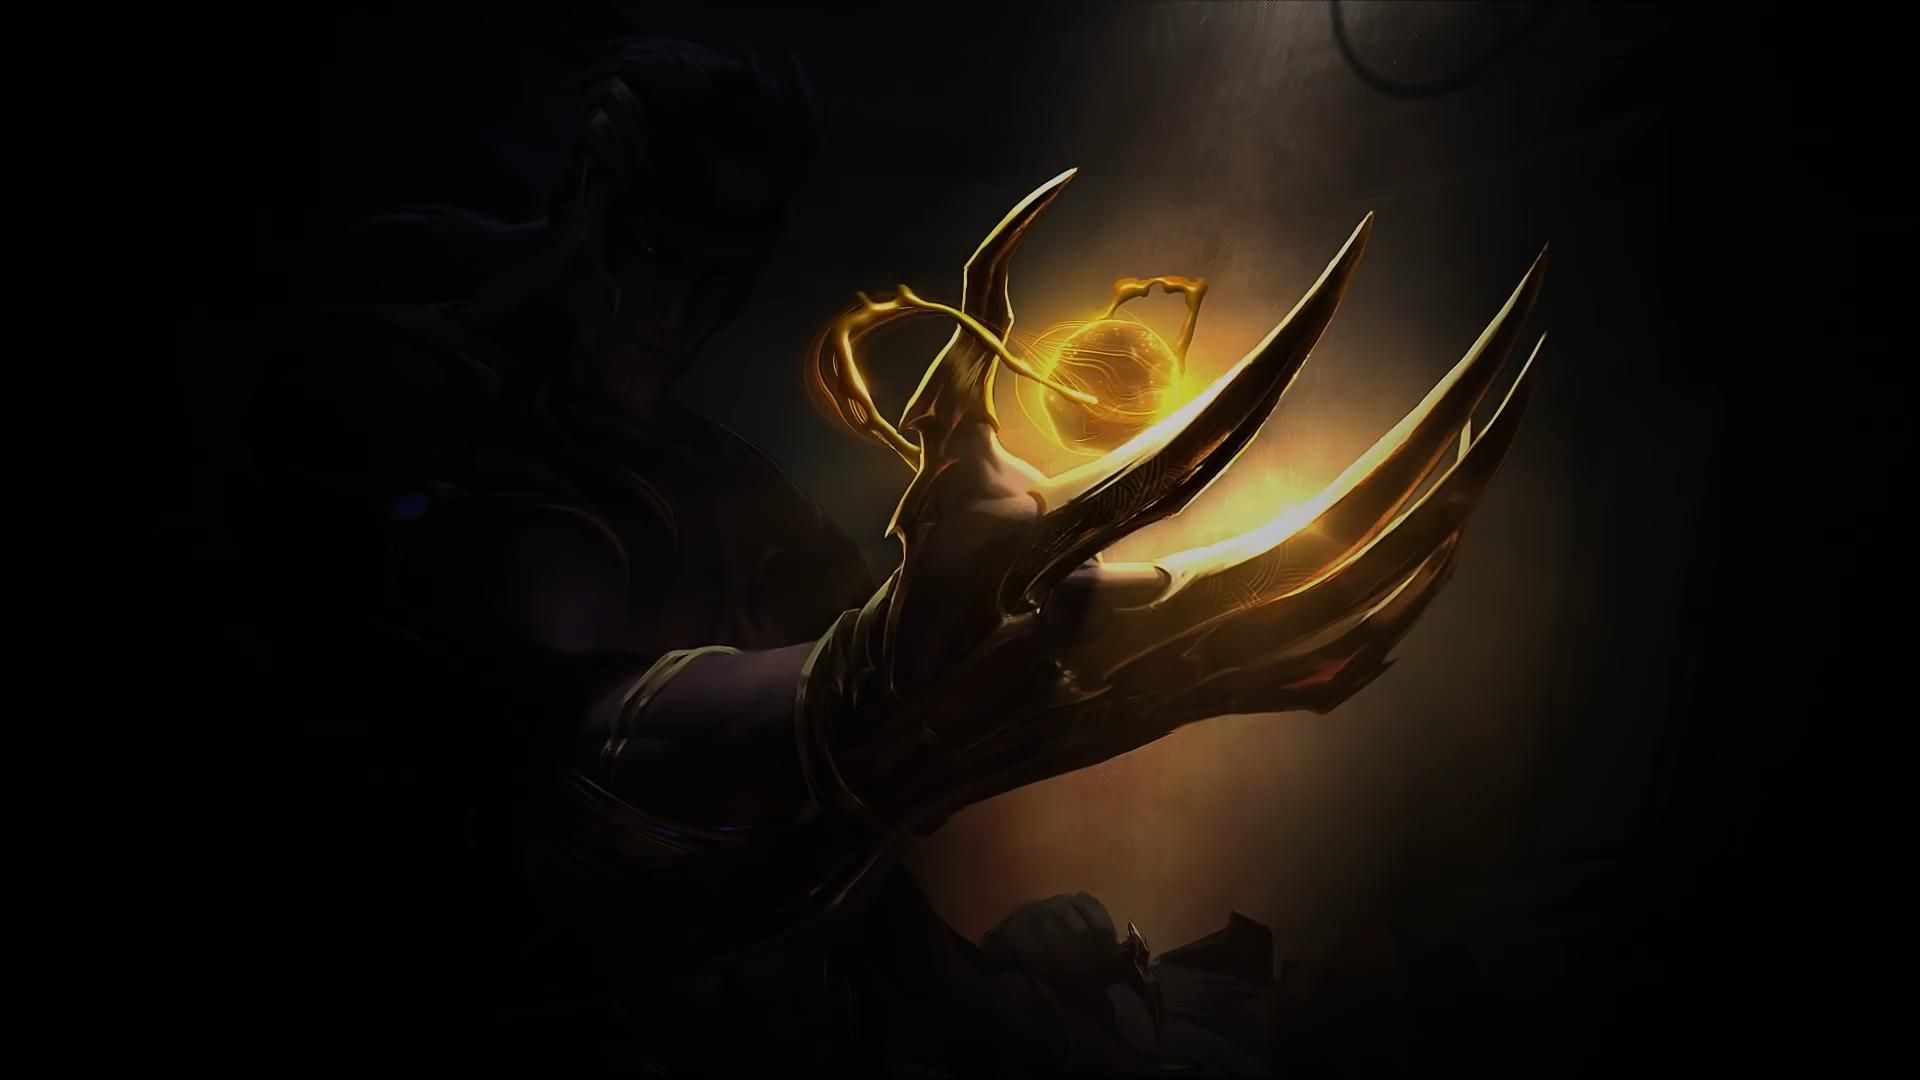 League Of Legends Galaxy Slayer Zed Gaming Wallpaper Video In 2020 Gaming Wallpapers Iron Man Art Warcraft Art